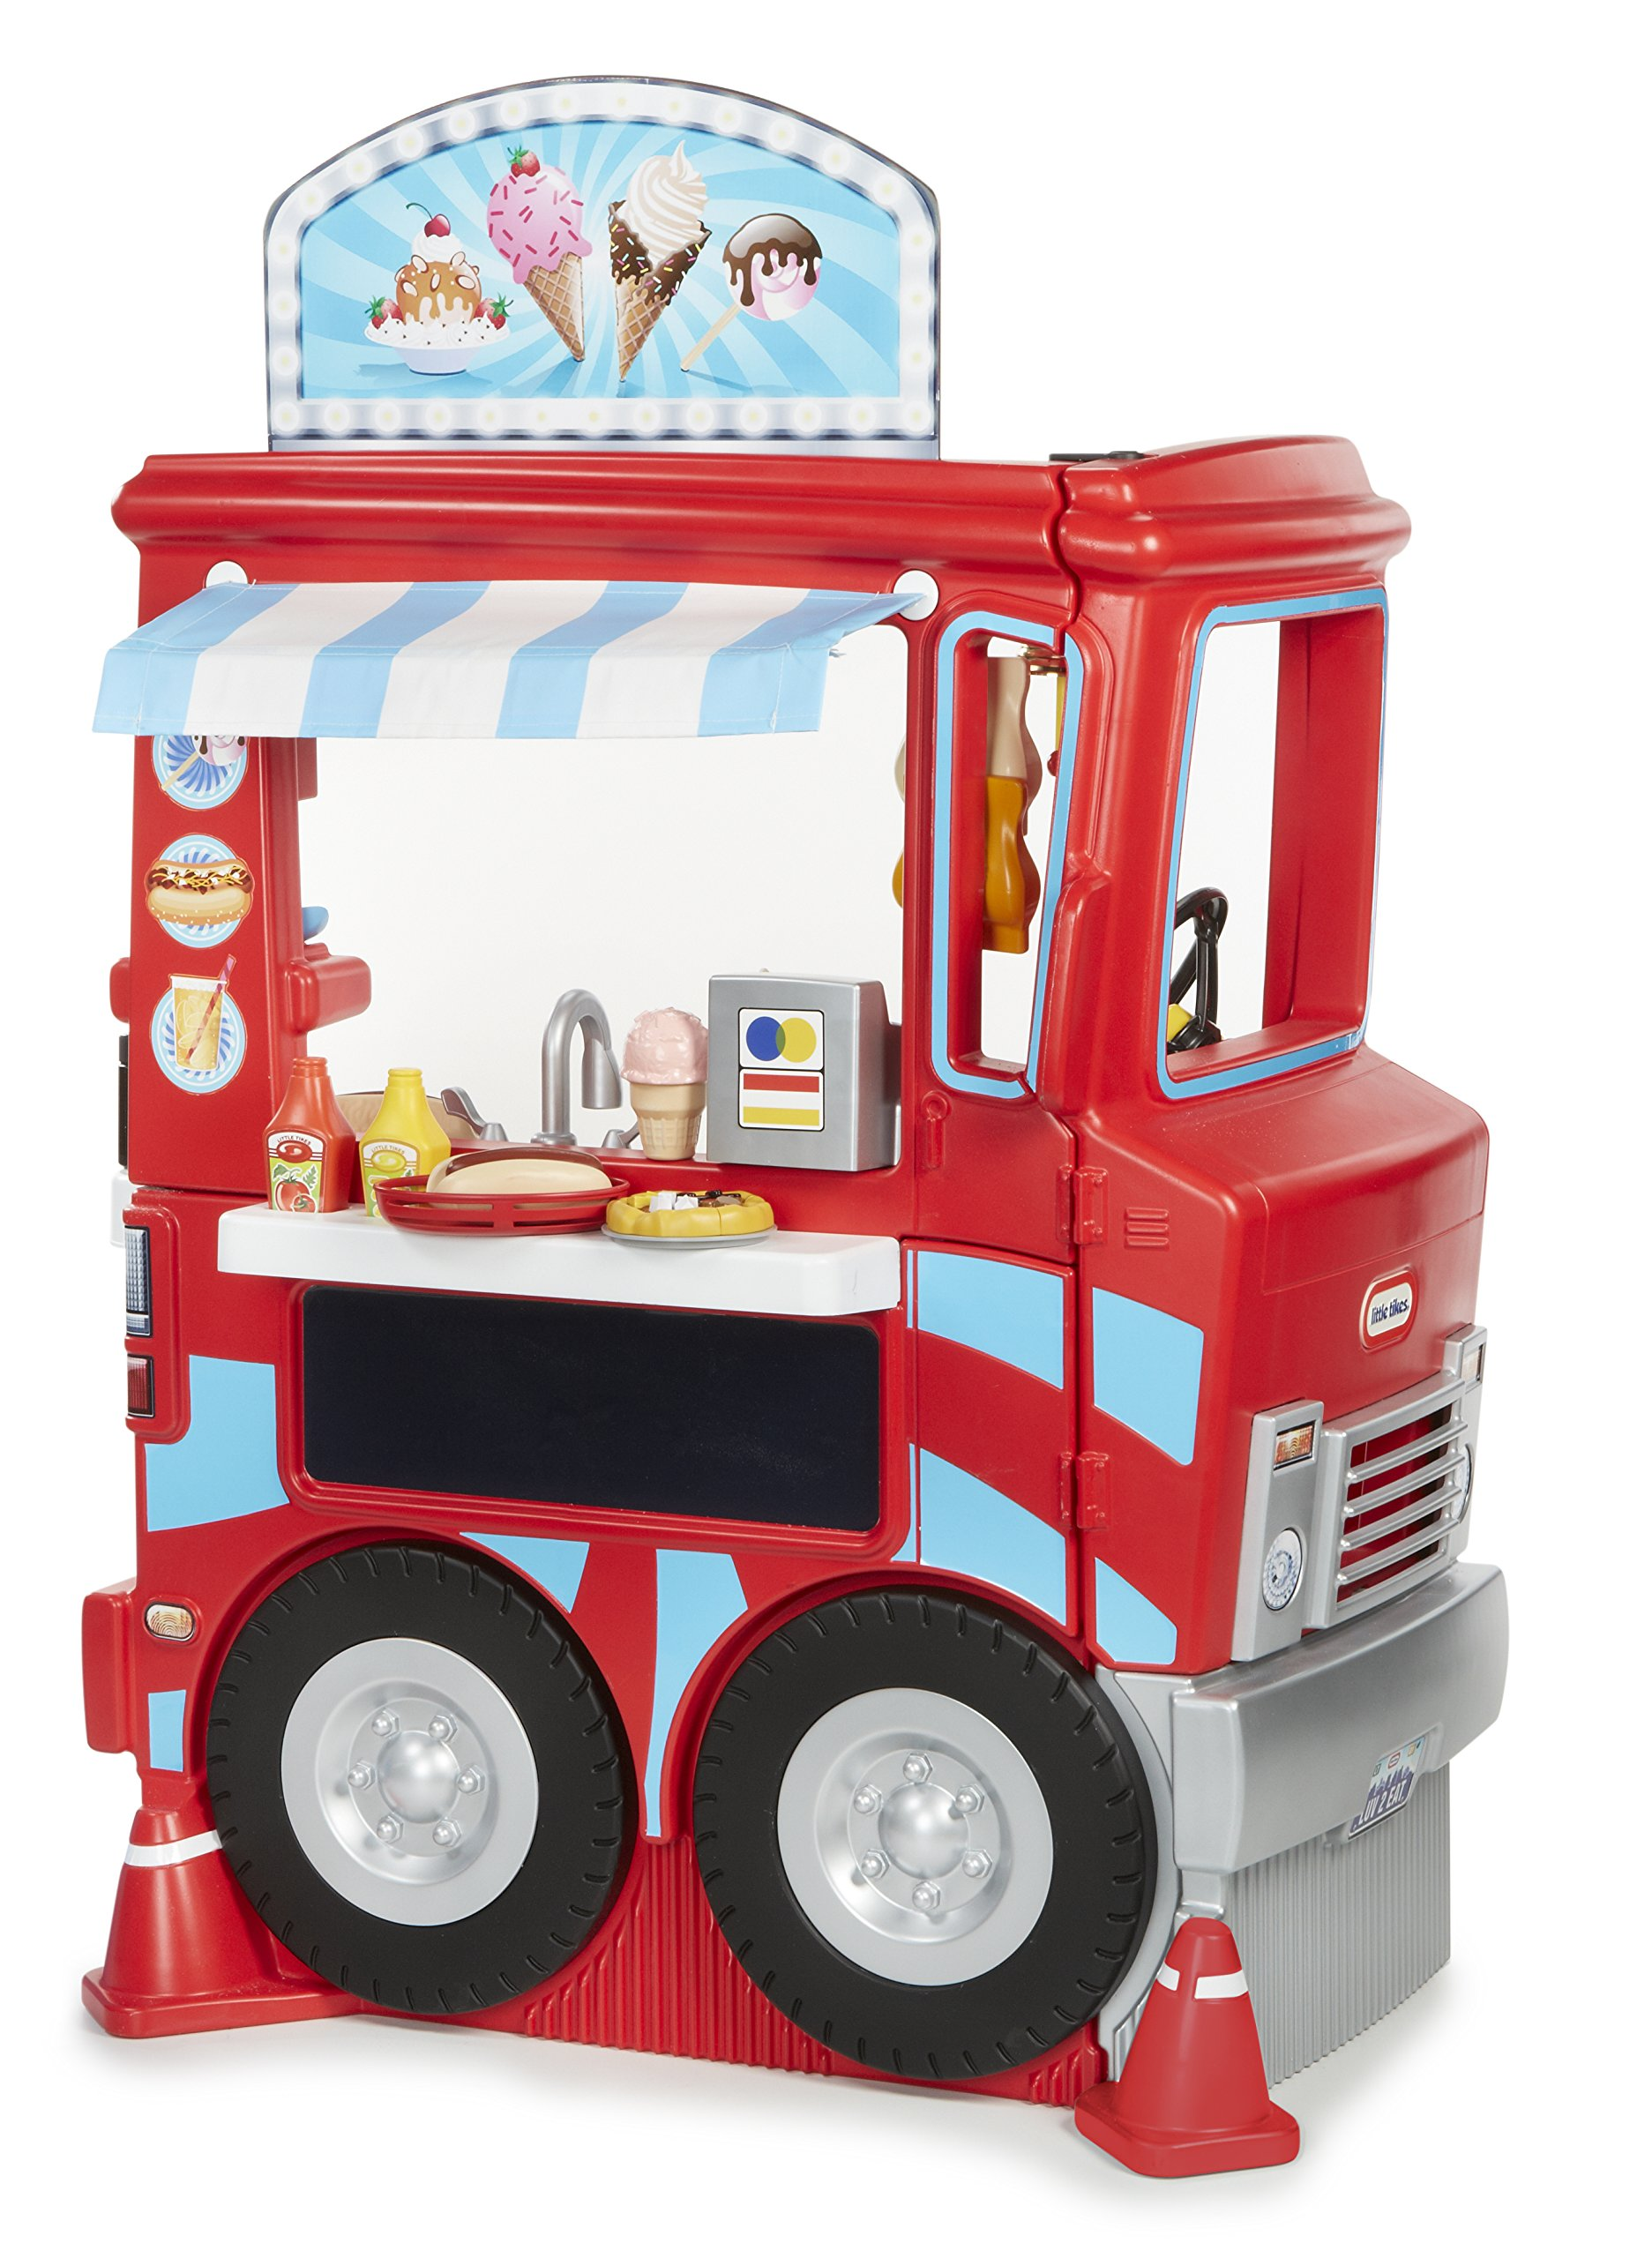 Little Tikes 2-in-1 Food Truck Deluxe Role Play by Little Tikes